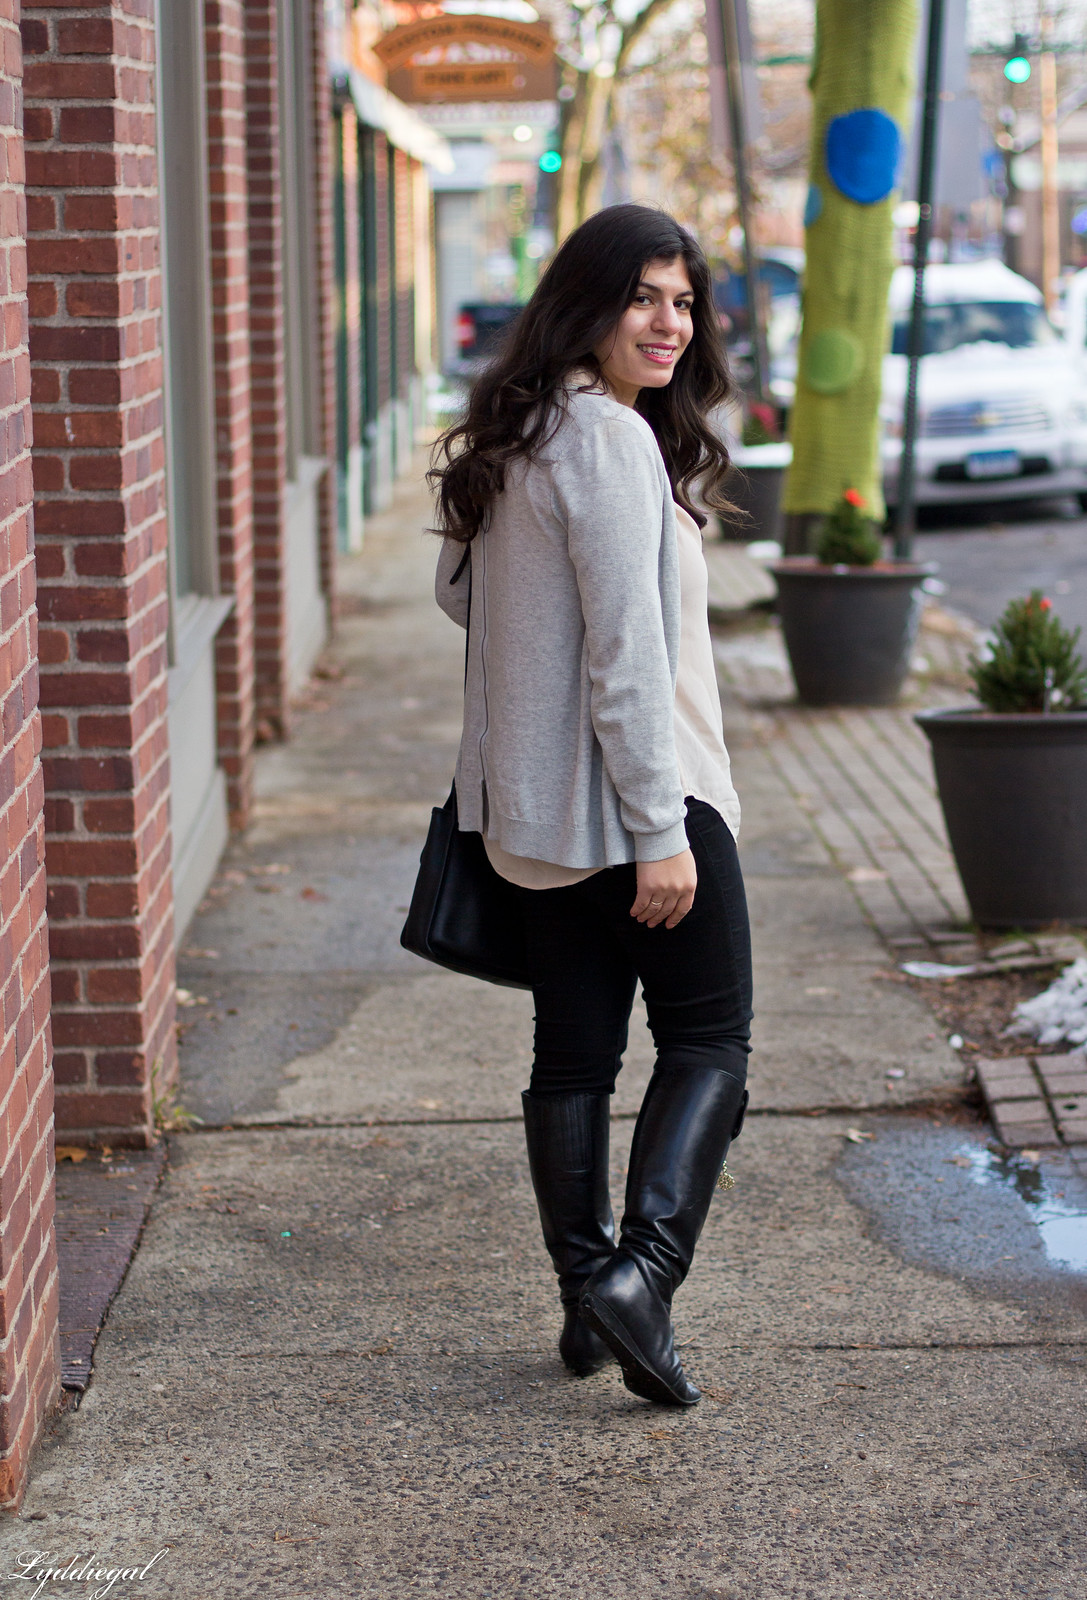 blush silk top, black jeans, boots, grey cardigan-12.jpg